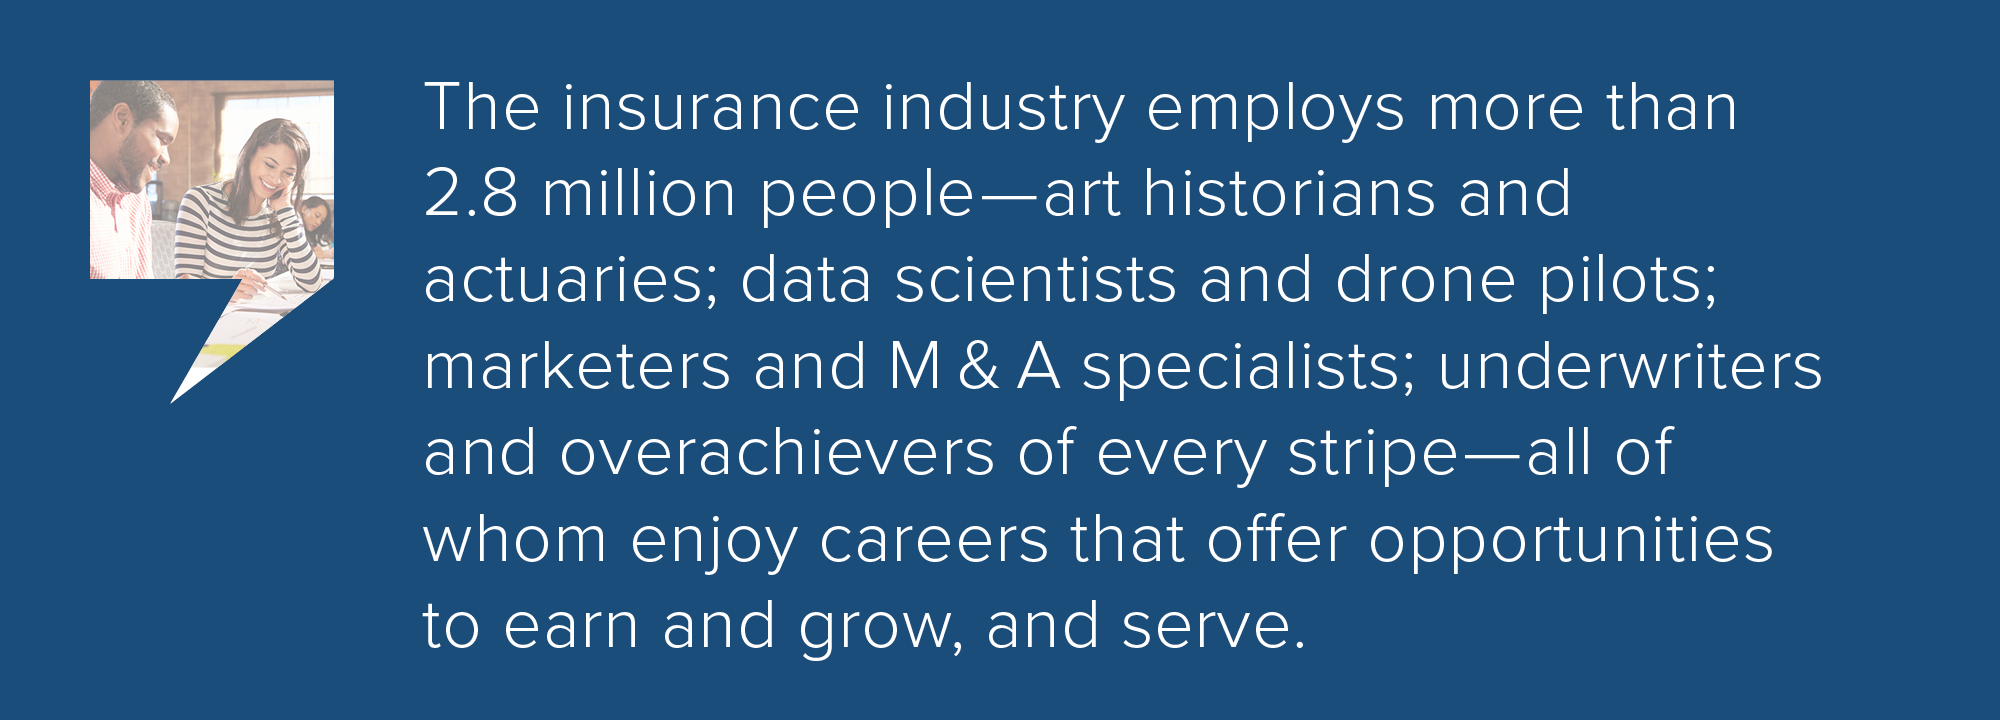 The insurance industry employs more than  2.8 million people